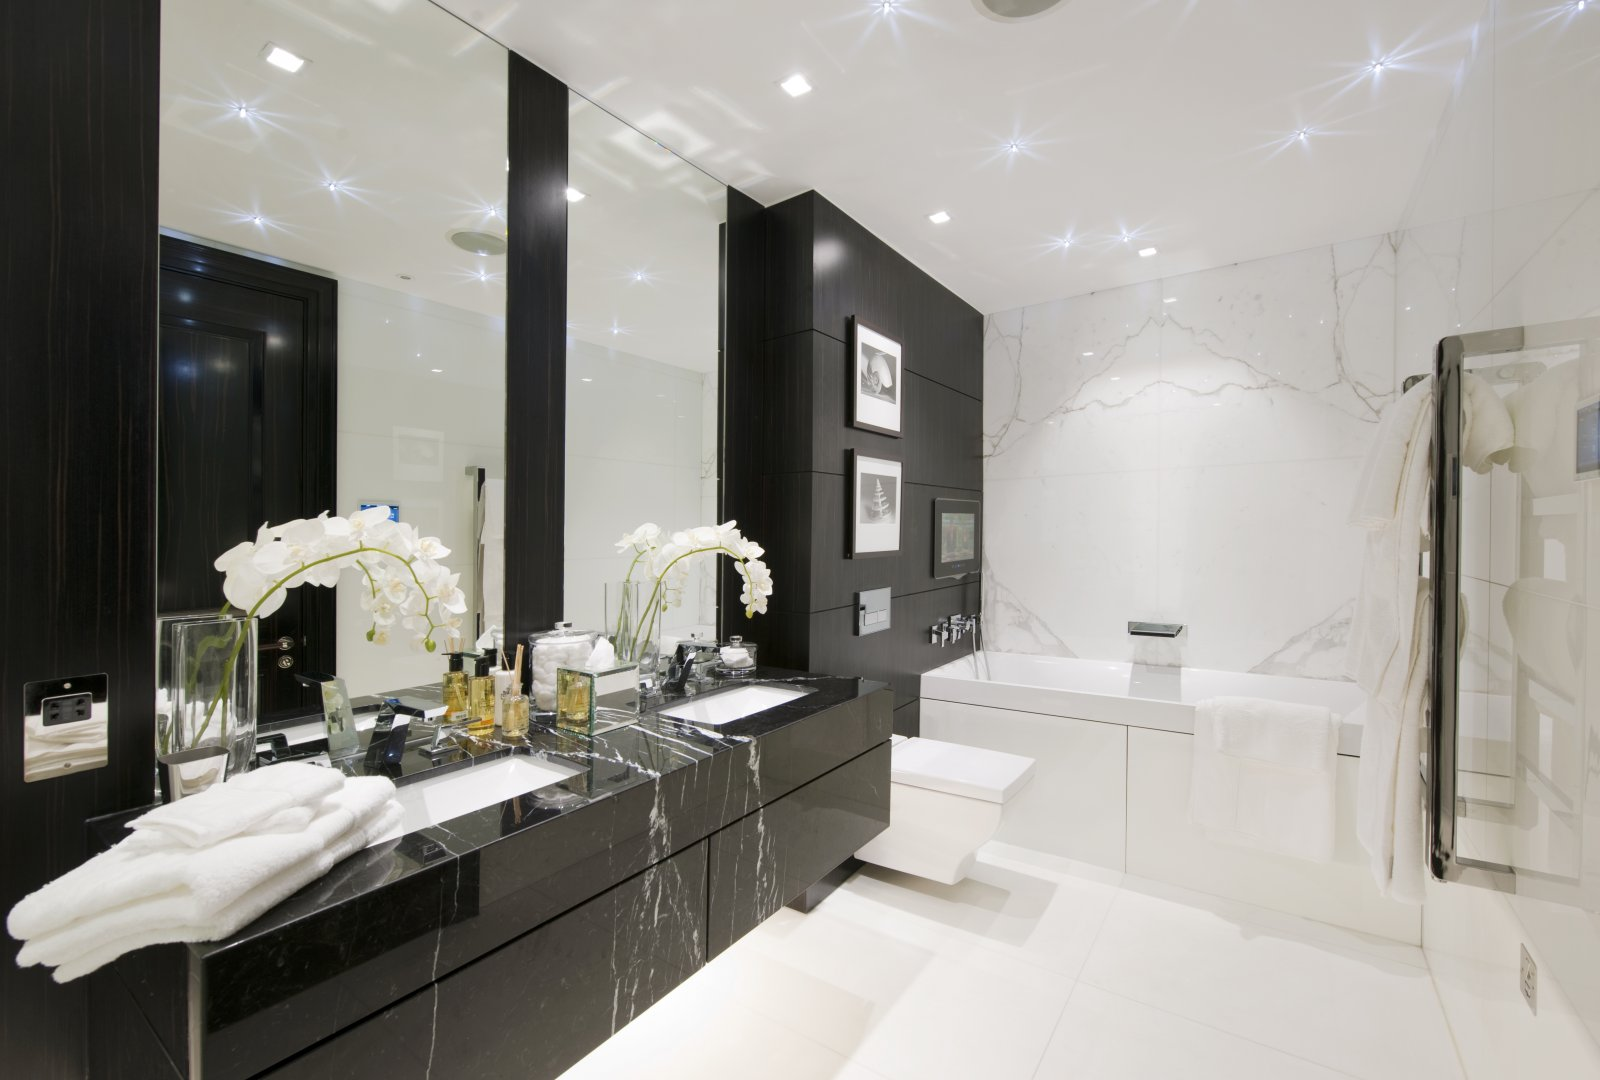 Black Furniture: Interior Design Photo Ideas. Royal luxurious marble trimmed high bathroom with in the black and white color theme and minimalistic style